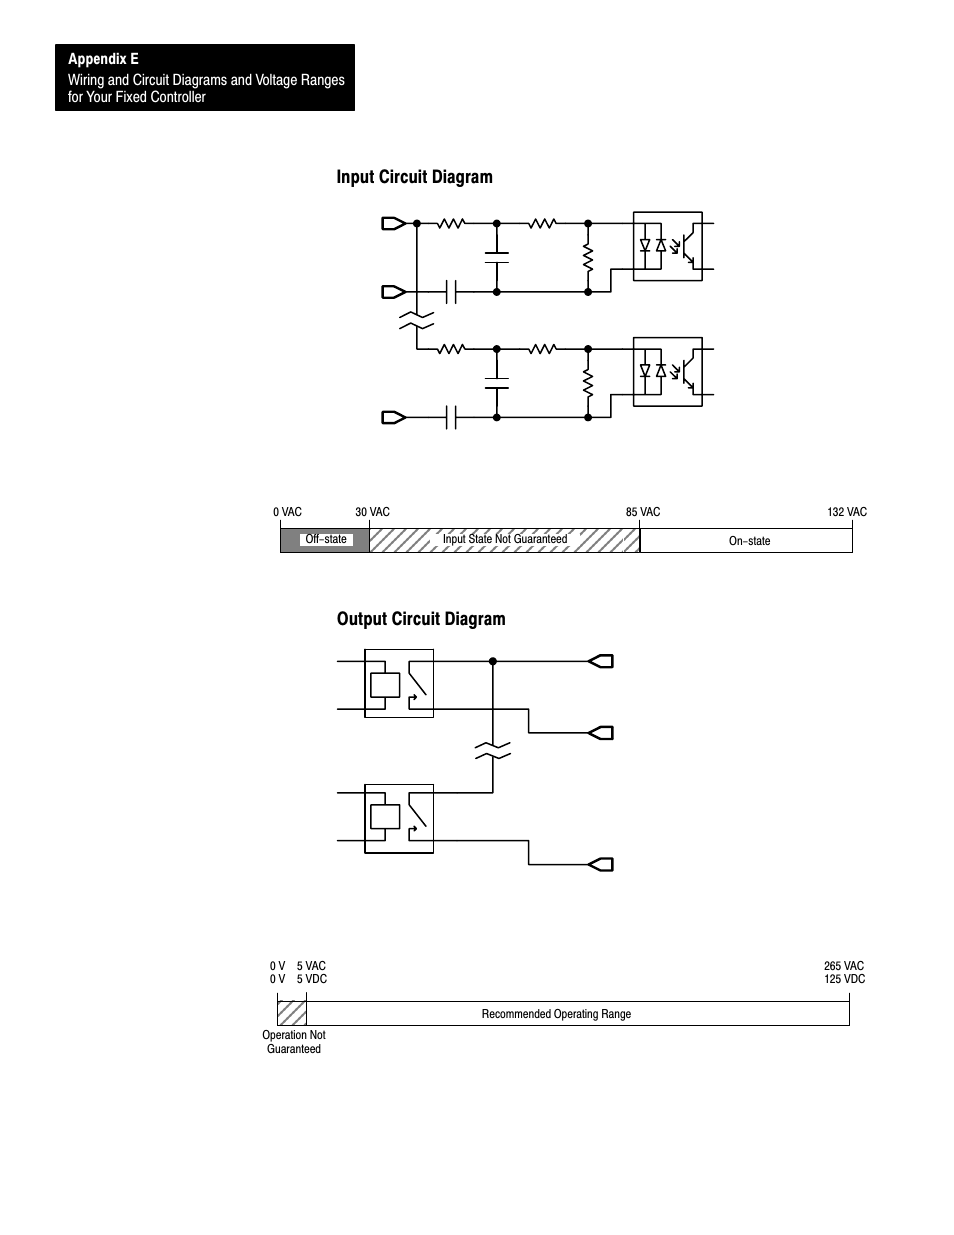 input circuit diagram, output circuit diagram, e-34 | rockwell automation  1747-l40 slc 500 fixed hardware style user manual | page 177 / 223